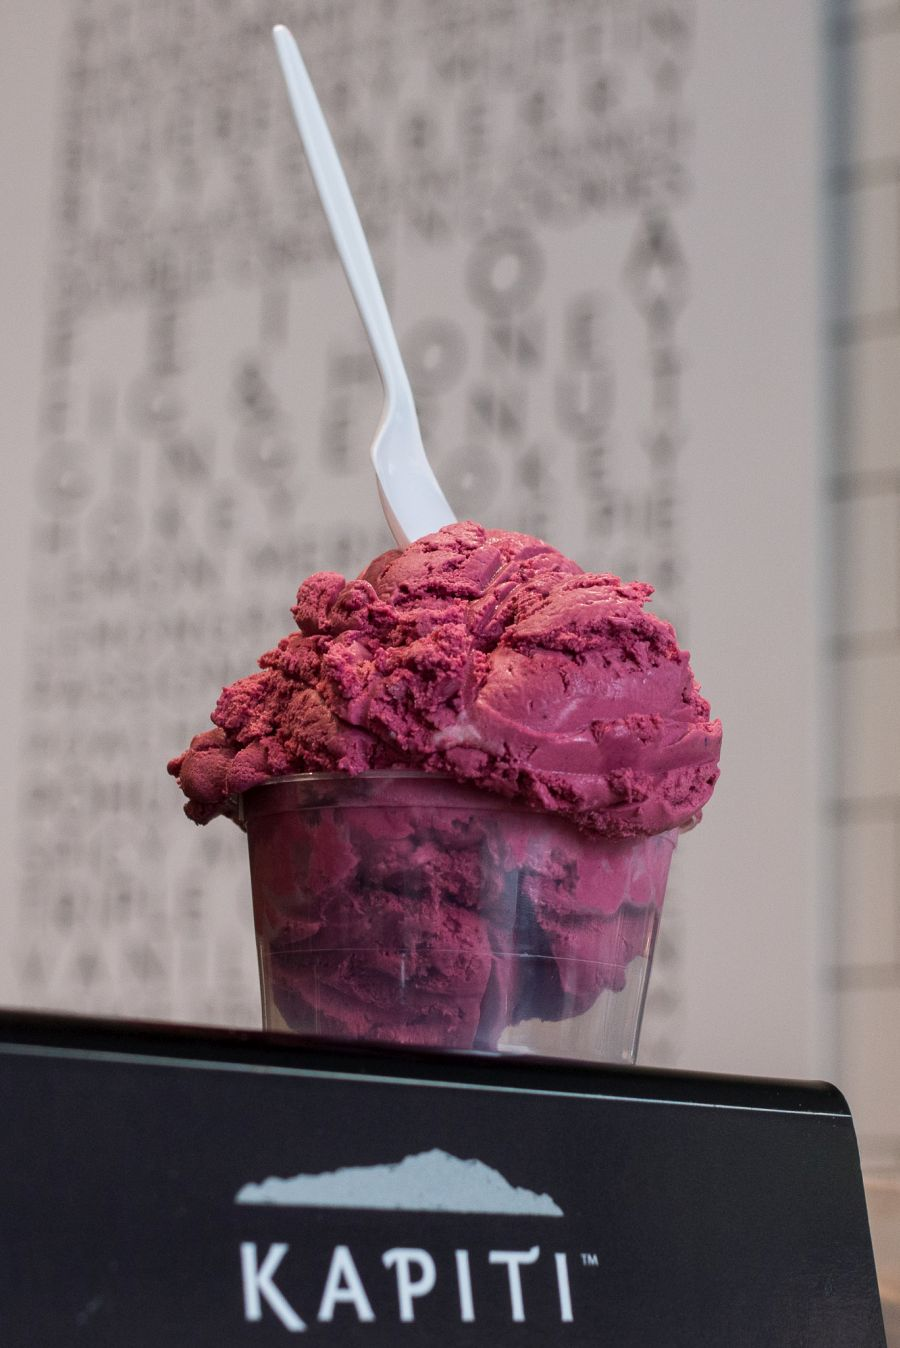 Black Doris plum and creme fraiche ice cream, Kapiti Store, Auckland